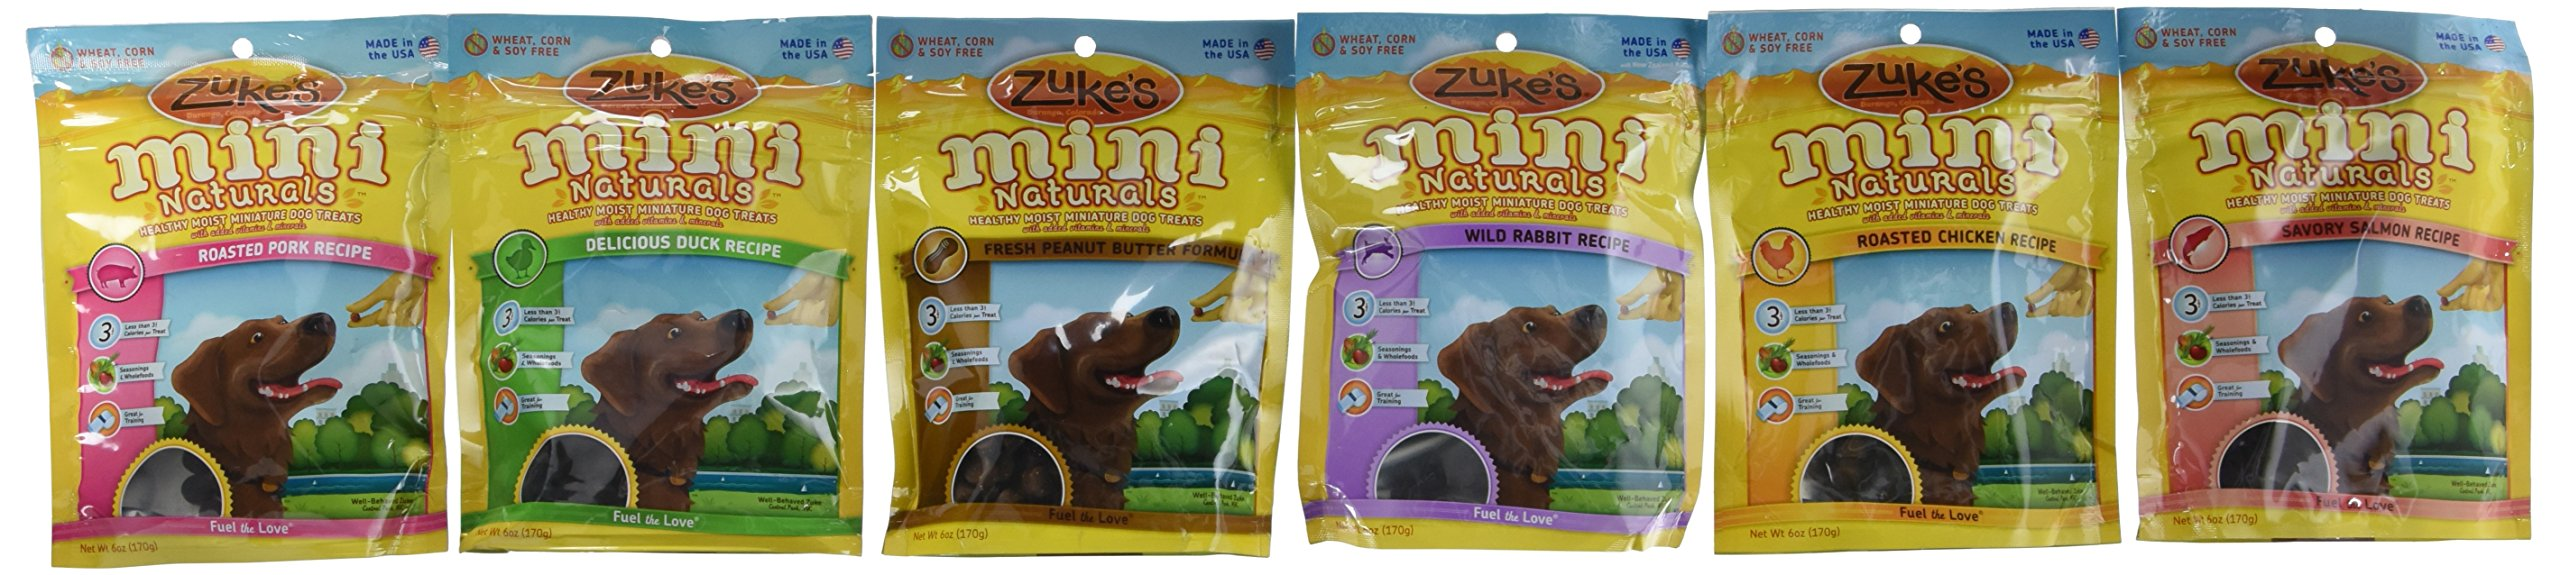 Zuke's Mini Naturals Healthy Moist Dog Treats Variety Pack - 6 Flavors (Roasted Pork, Wild Rabbit, Roasted Chicken, Delicious Duck, Savory Salmon, & Fresh Peanut Butter) - 6 oz Each (6 Total Pouches) (6 flavors)